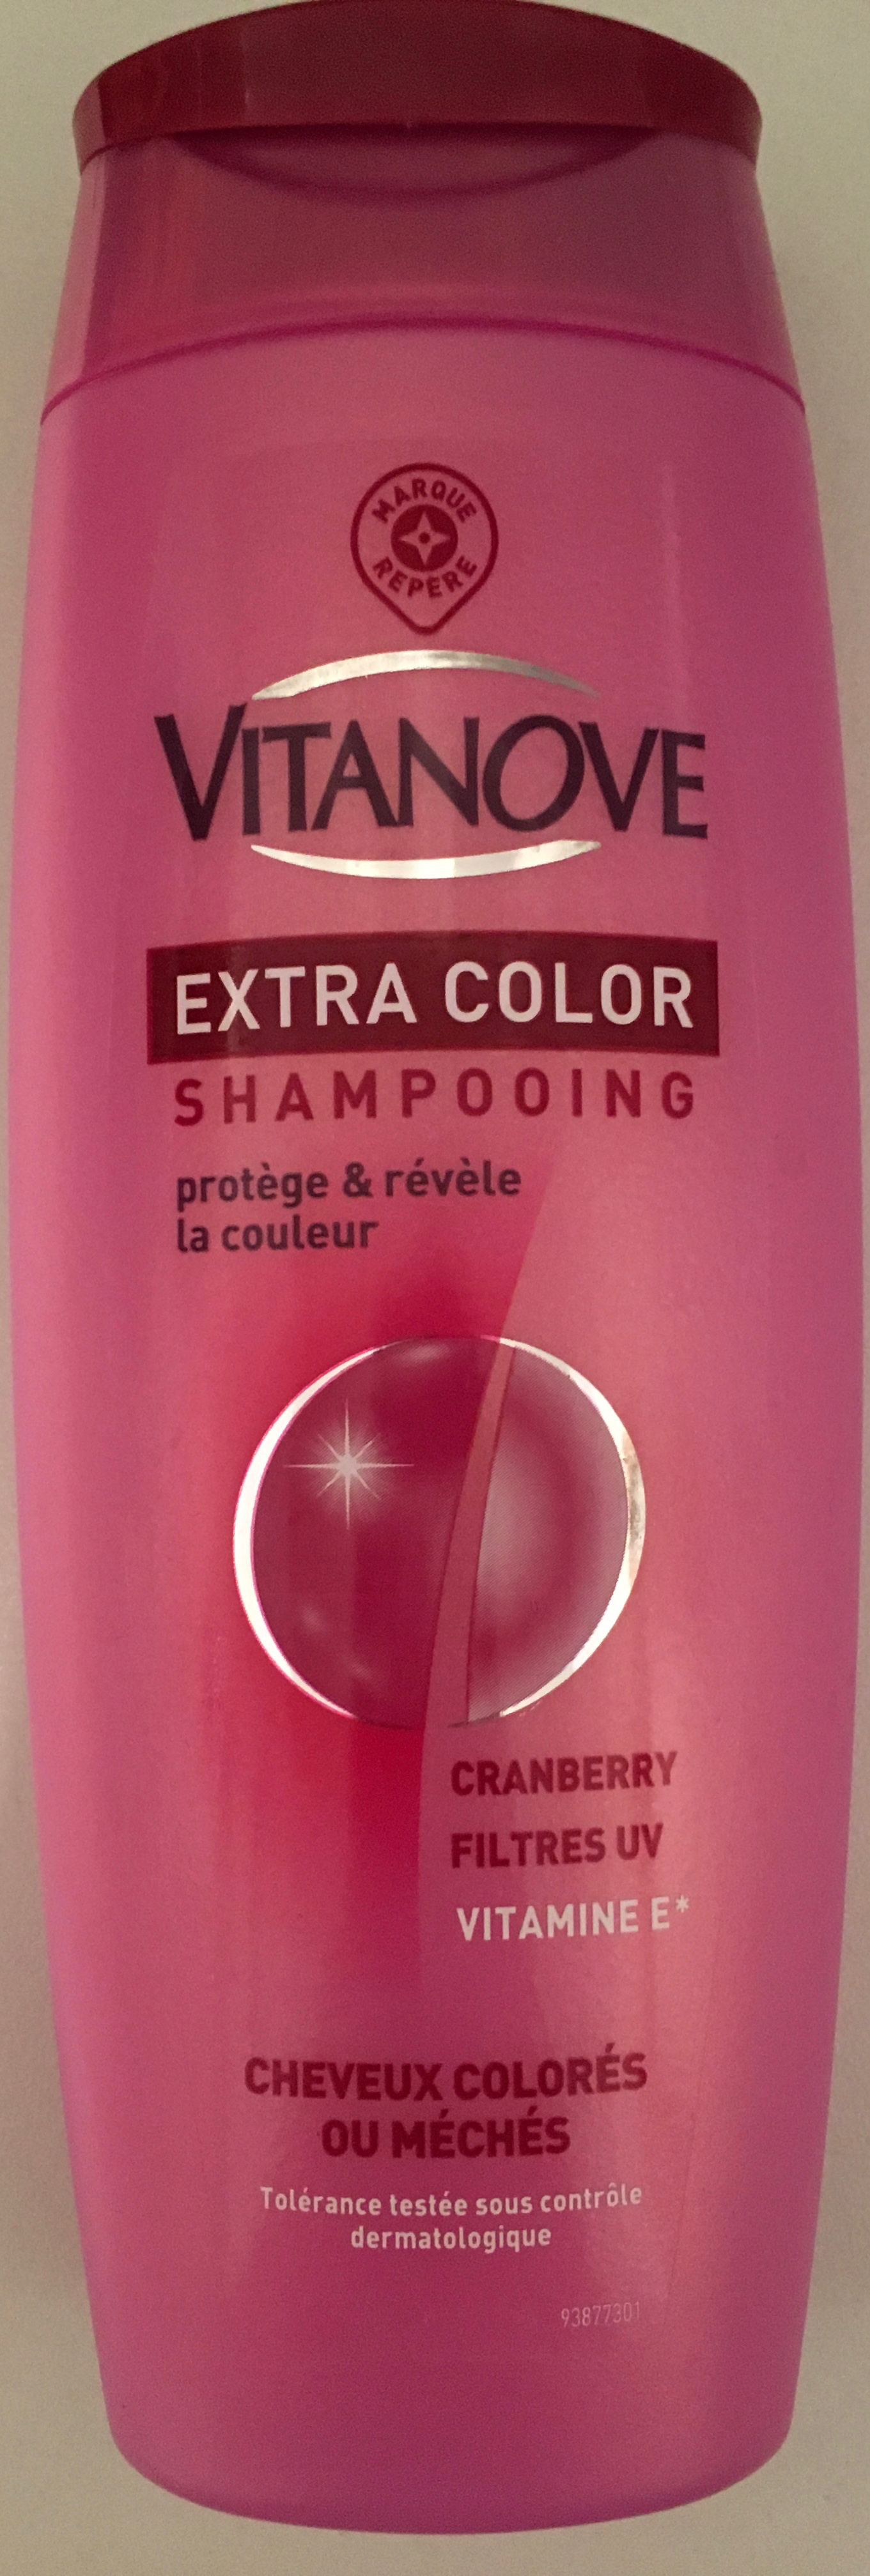 Extra Color Shampooing - Product